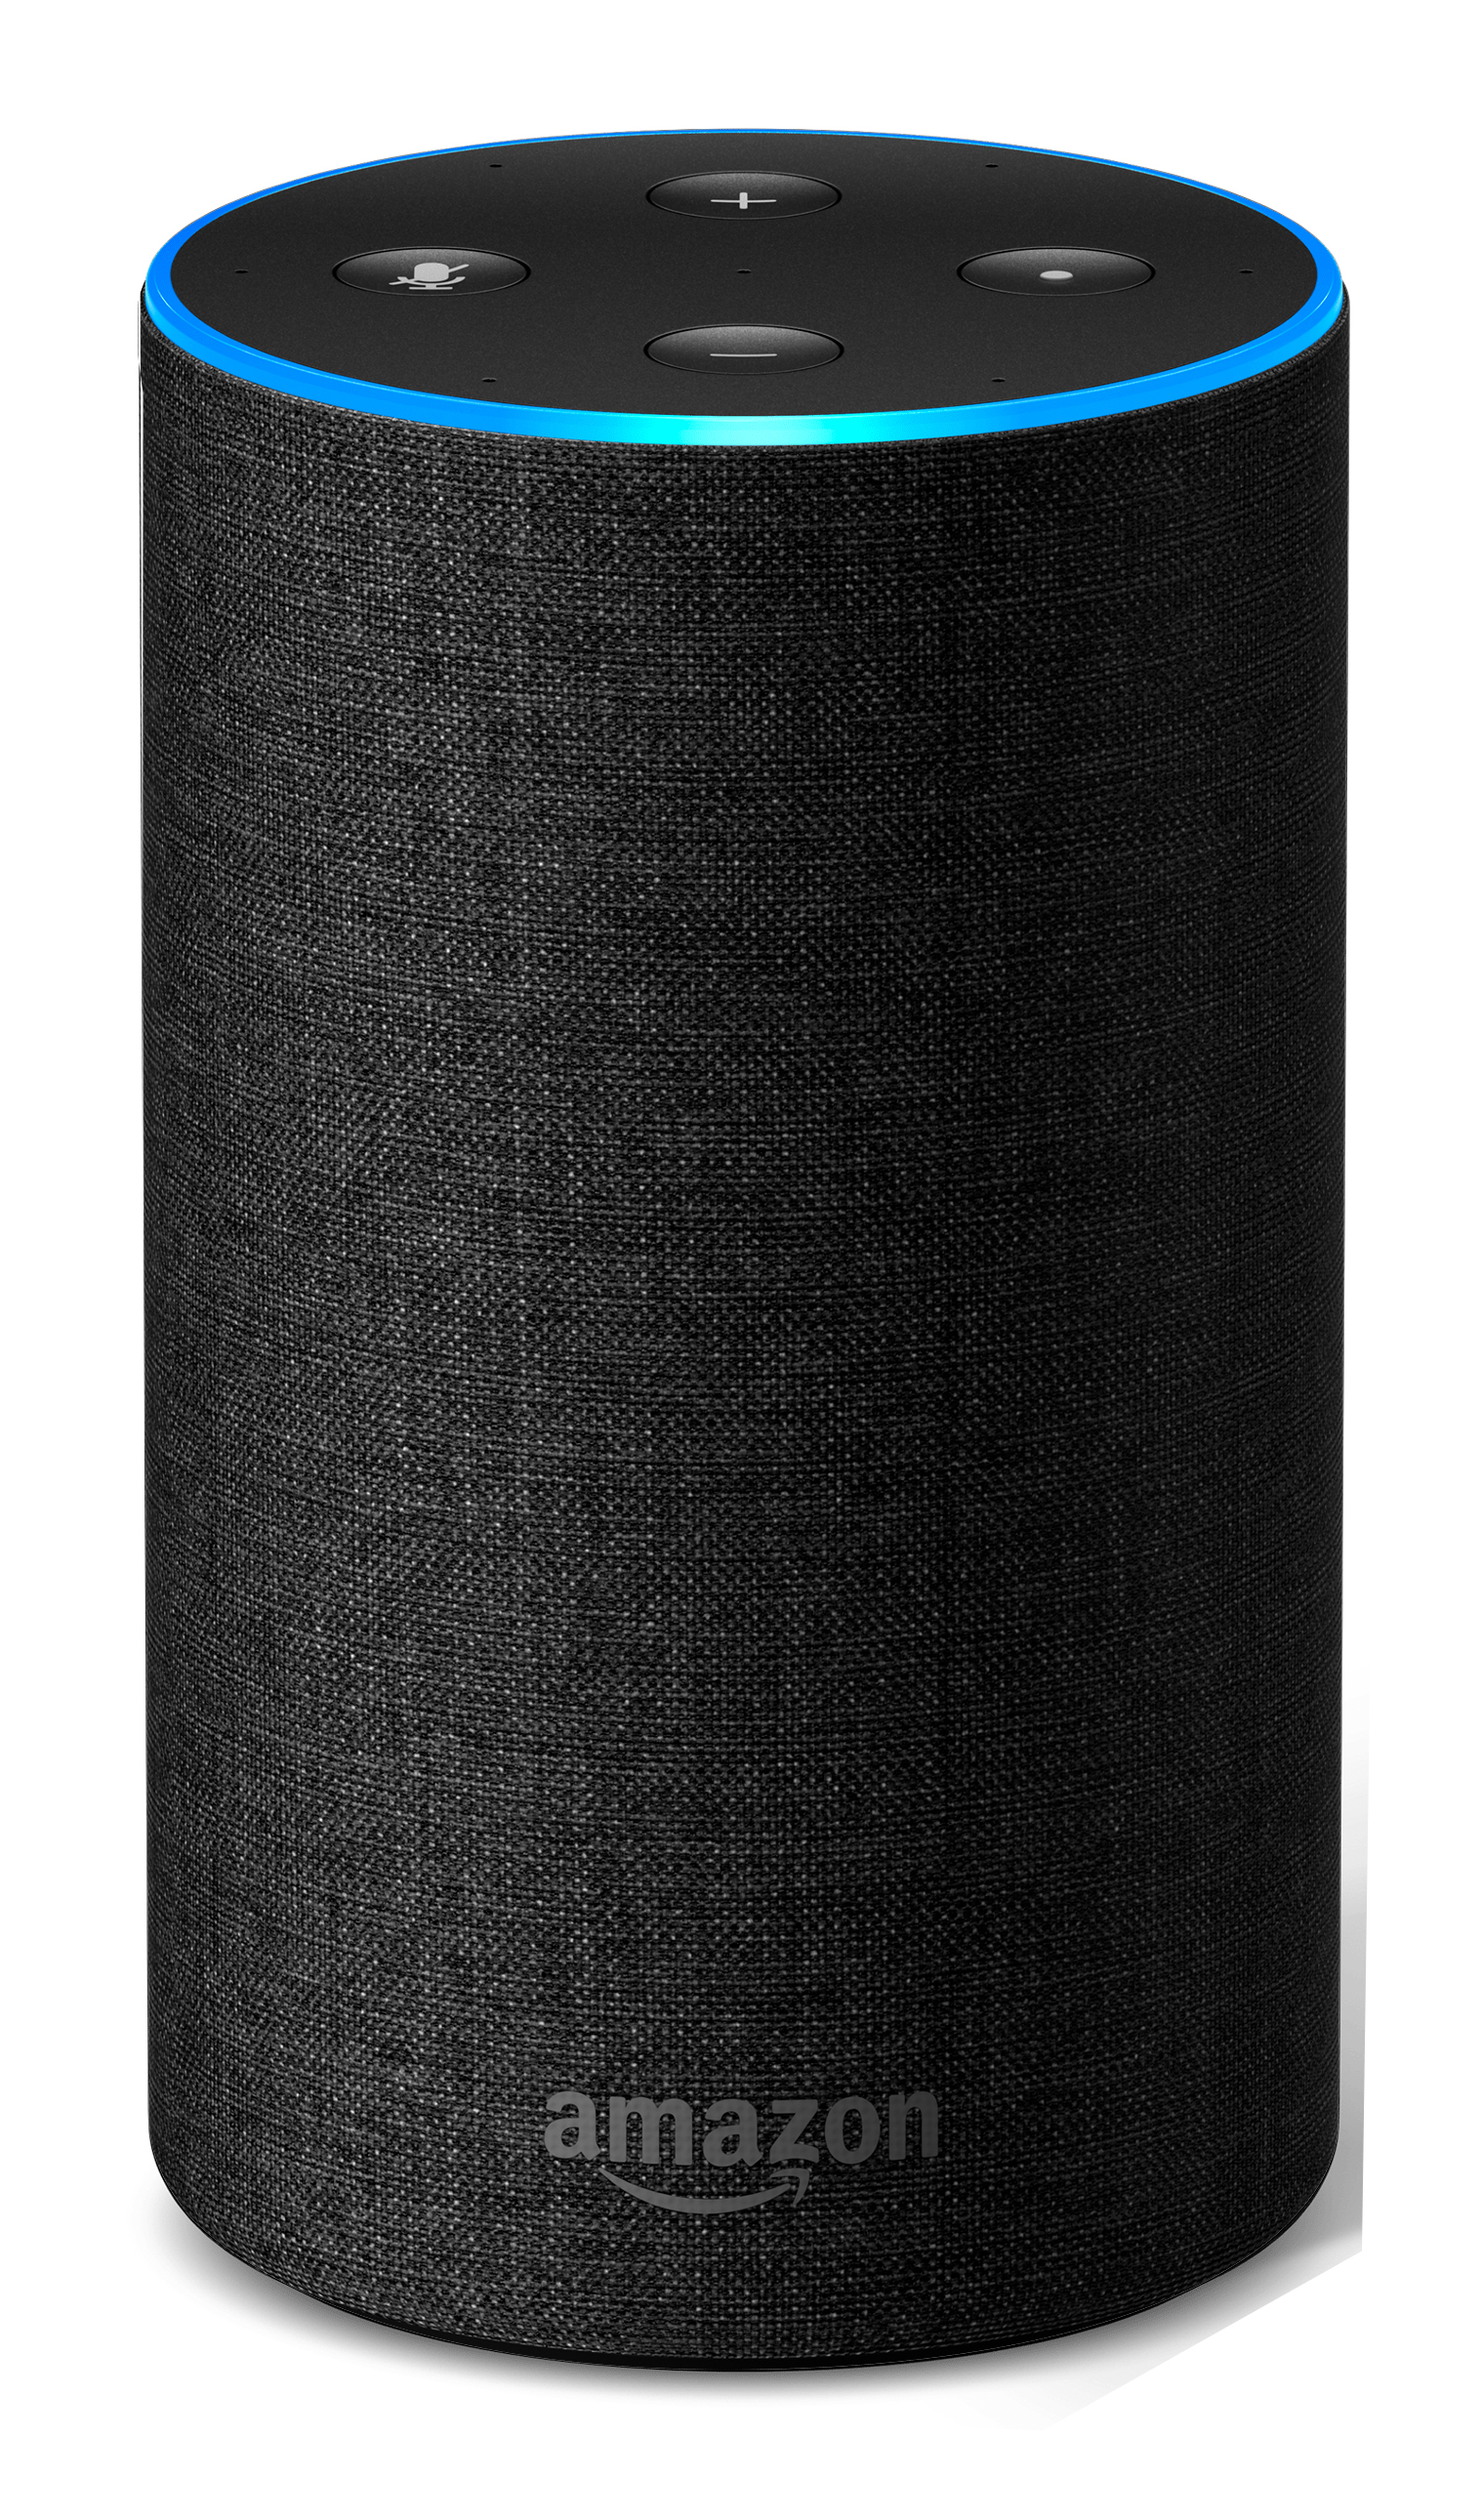 Amazon Alexa speaker compatible